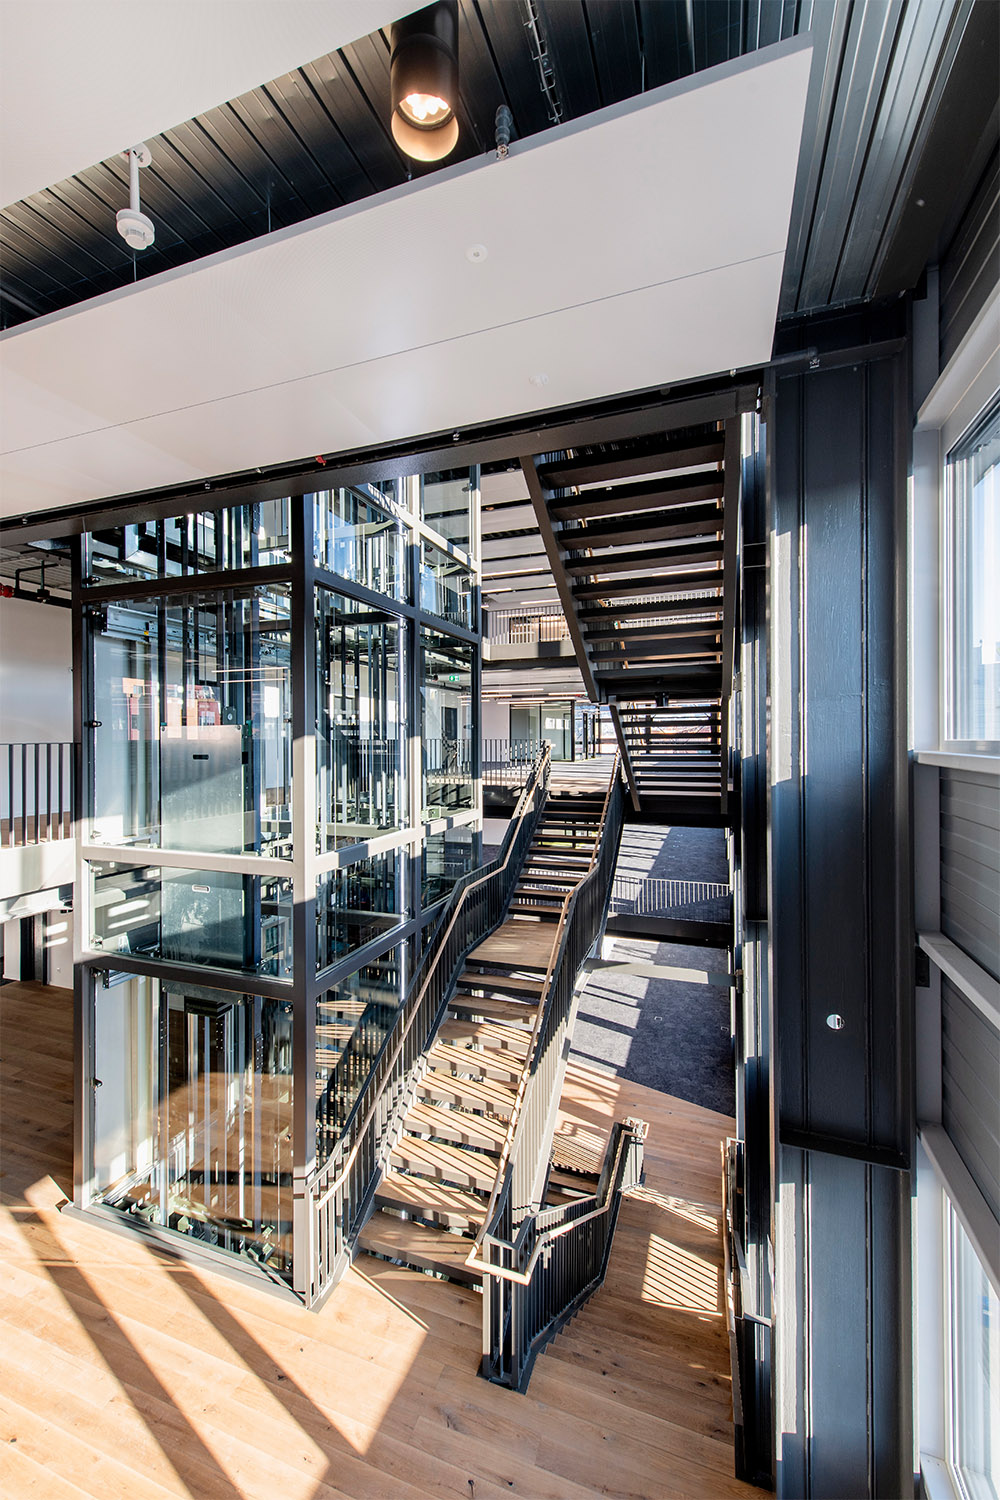 New light-filled atrium connects all floors in the new office building. Peter Wuermli